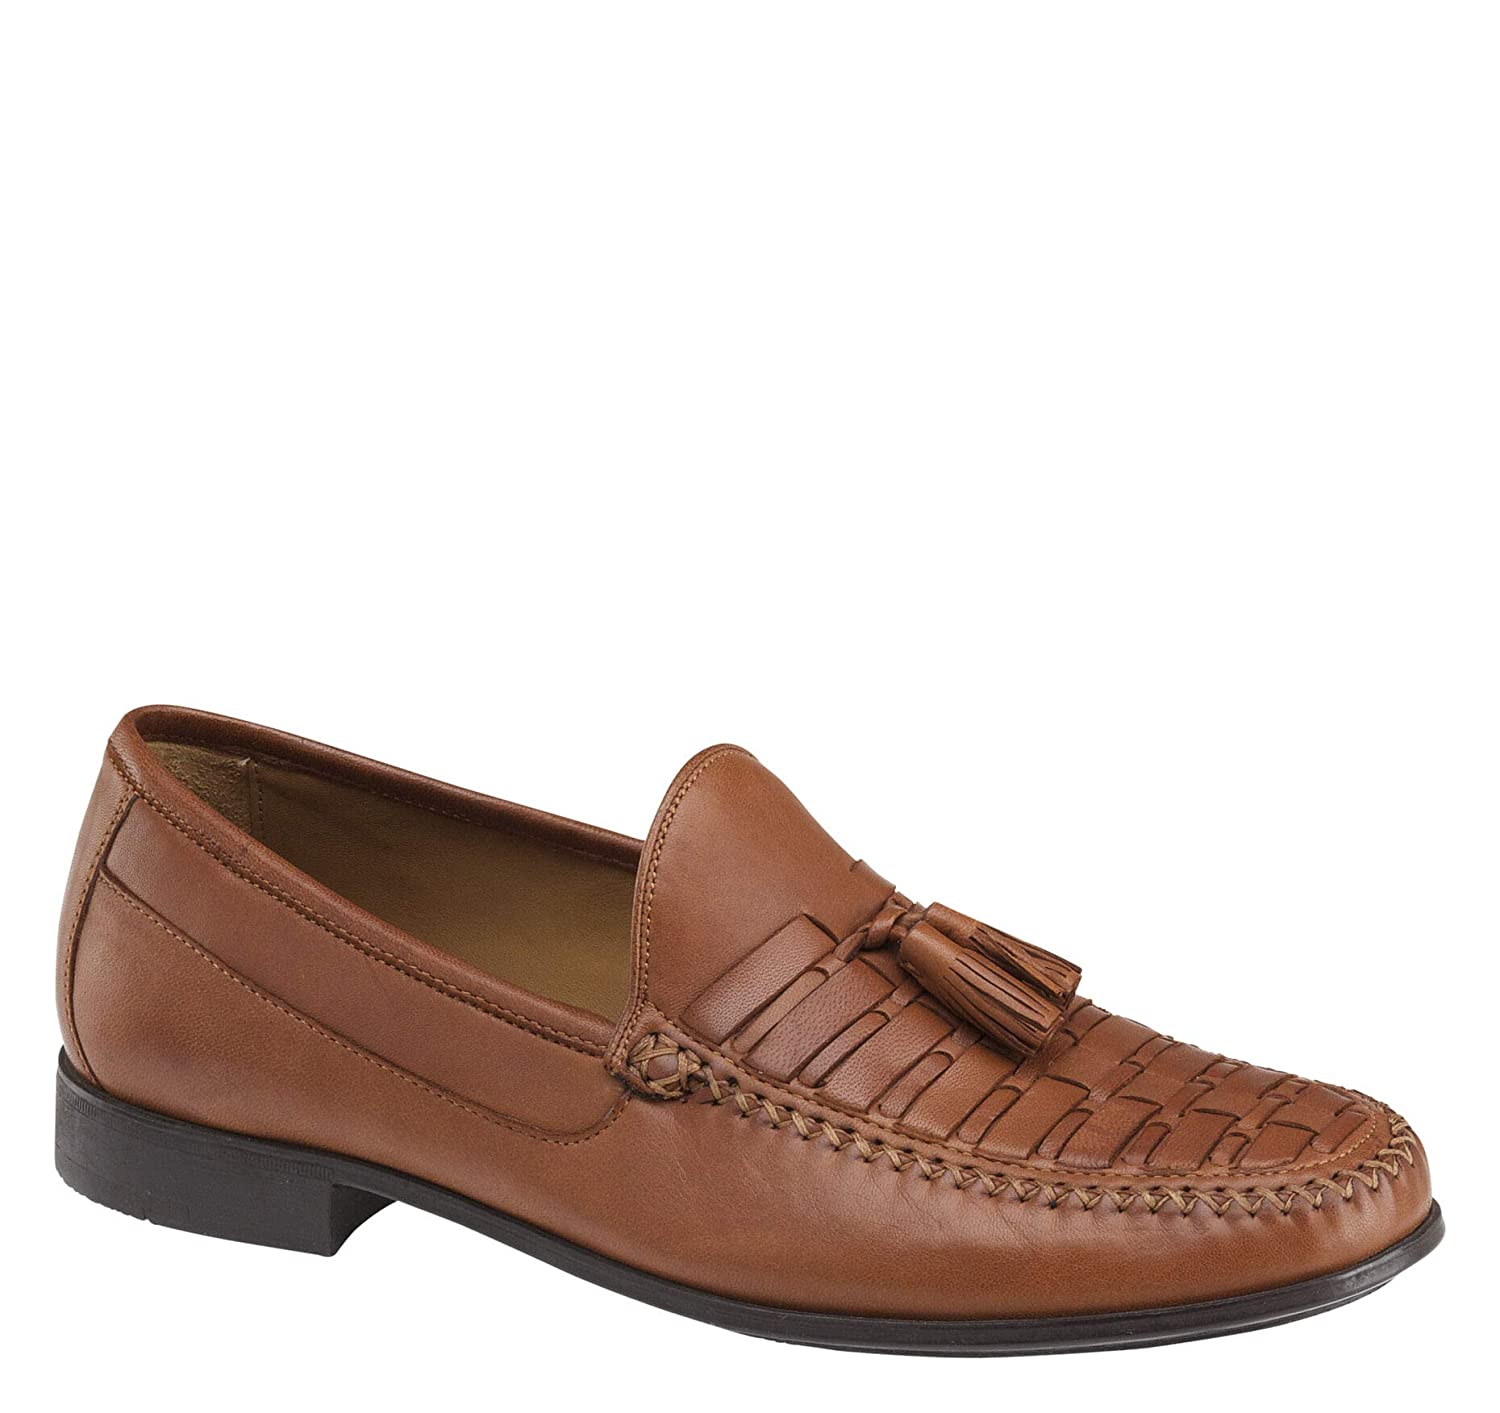 Johnston /& Murphy Mens Cresswell Woven Tassel